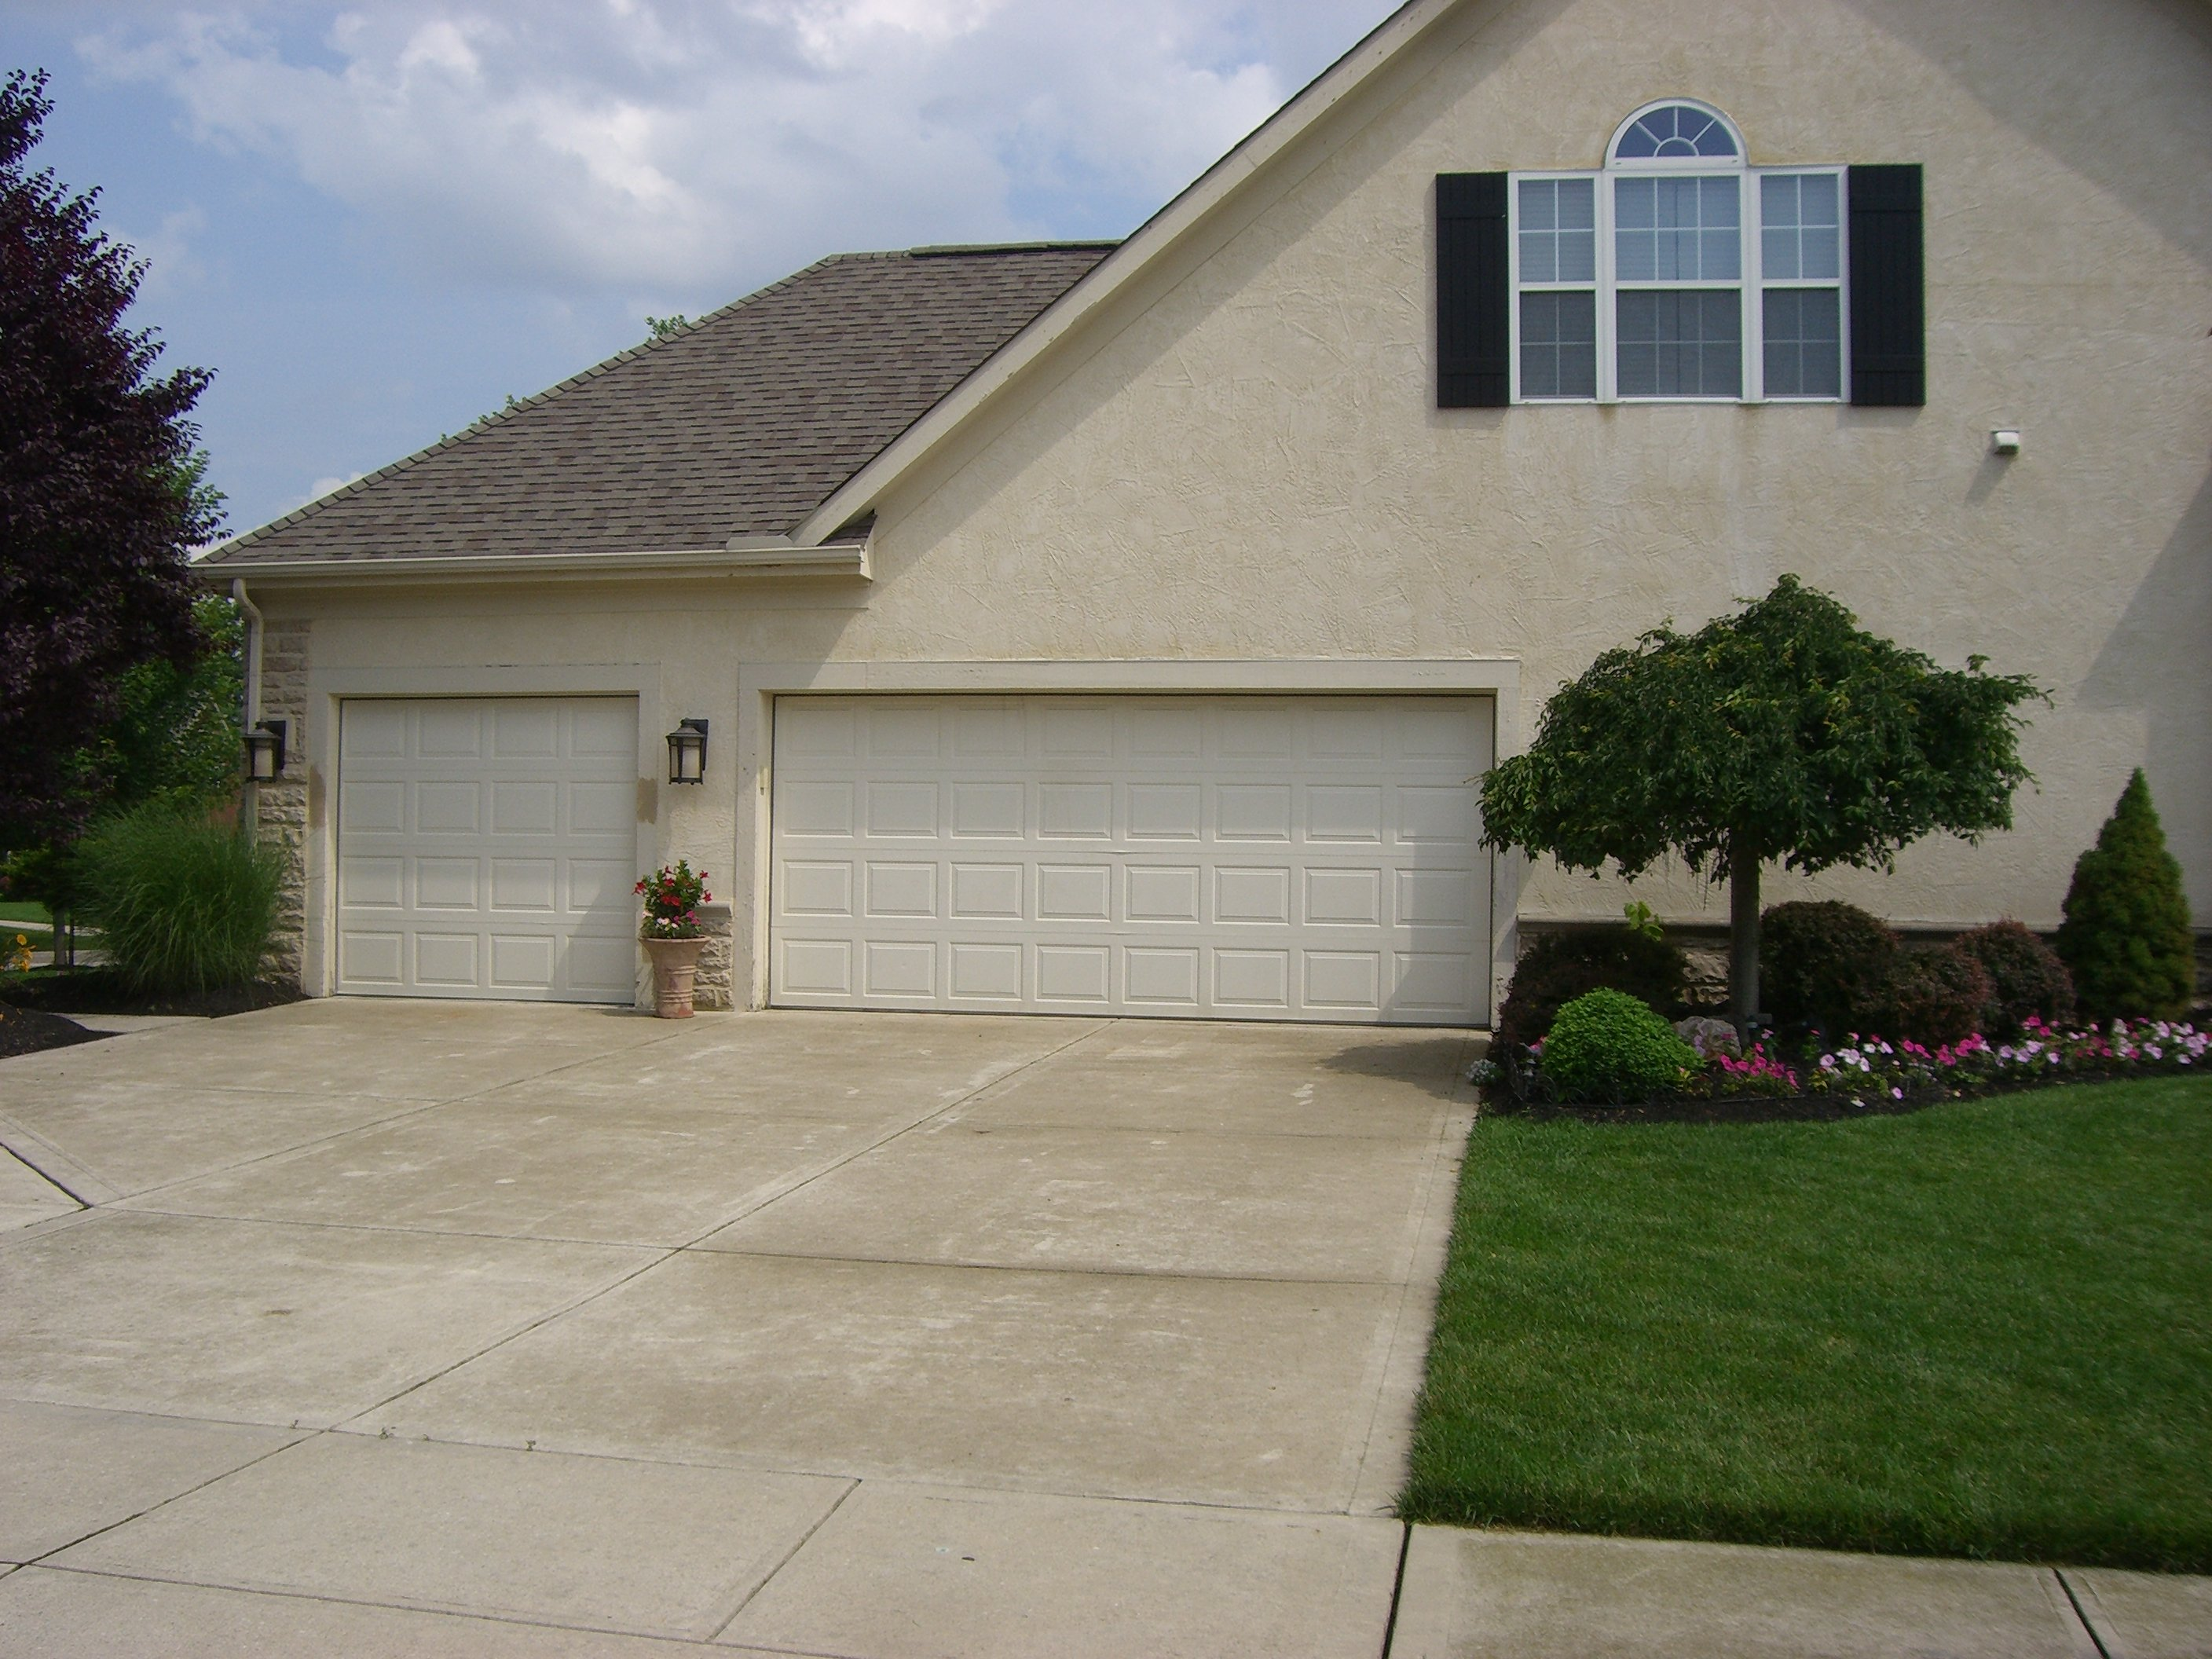 CIMG6037; CIMG6056 & Residential Garage Door Repair | Nofziger Doors (614) 873-3905